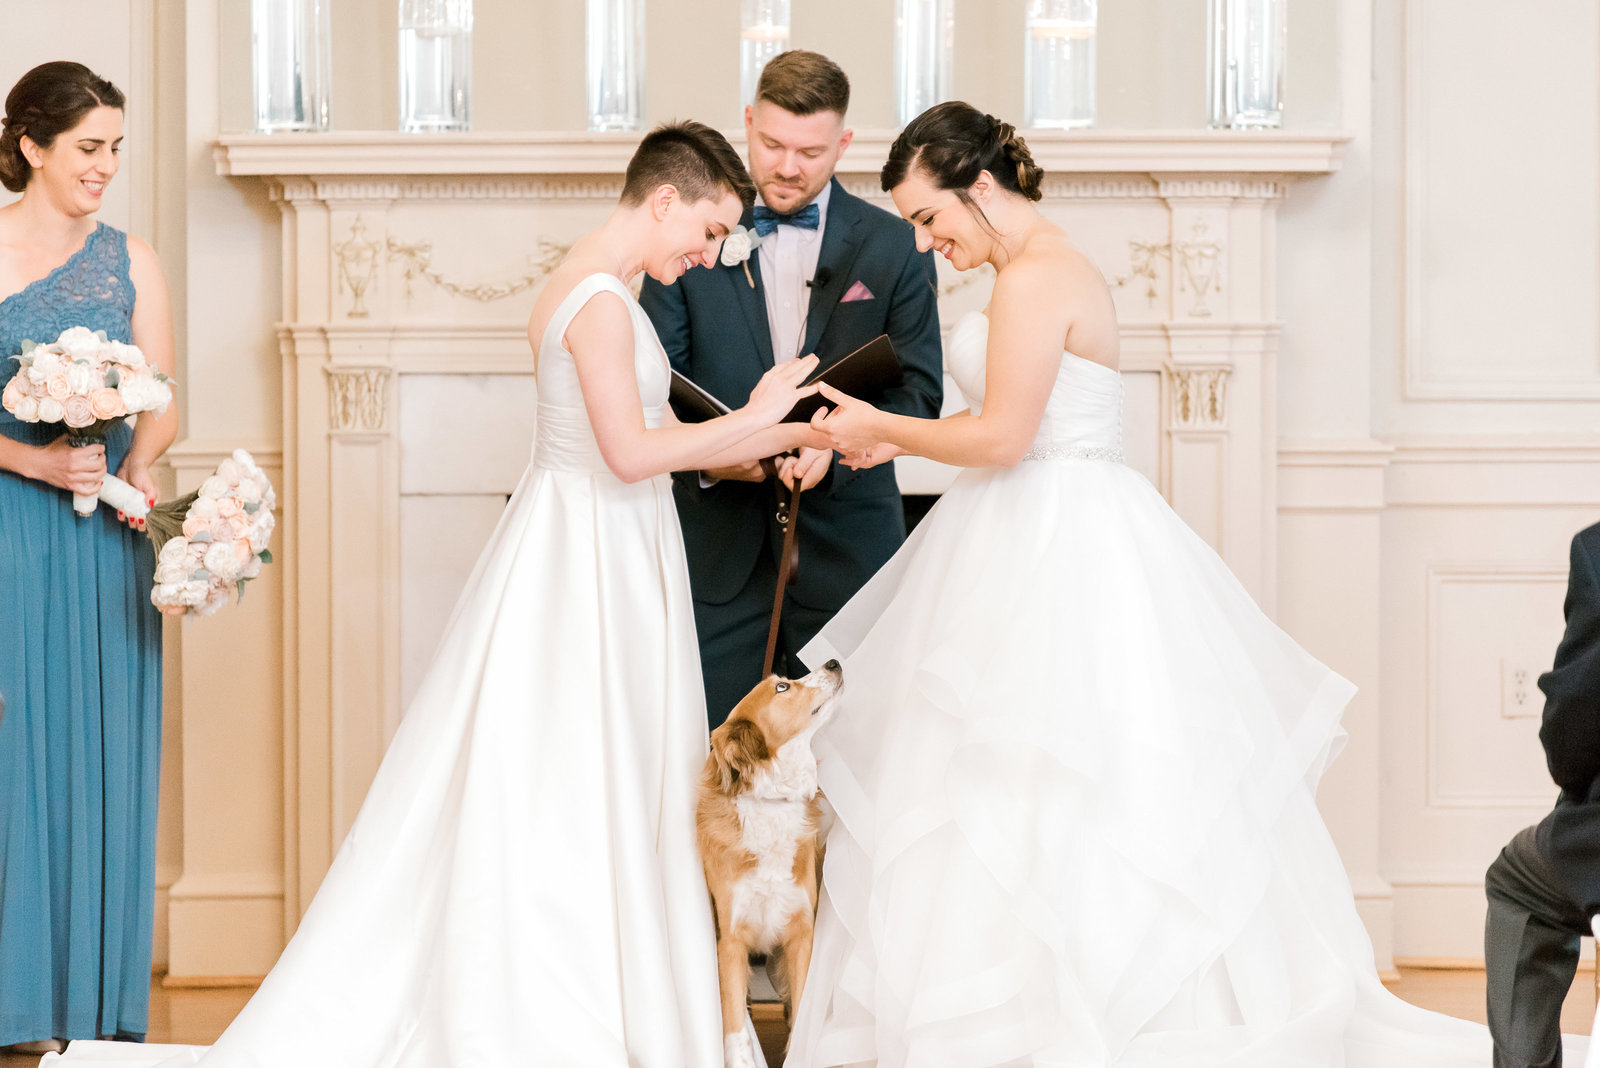 charlotte-LGBTQ-wedding-photographer-hotel-concord-weddings-bride-bridal-session-wedding-fine-art-bright-and-airy-film-photographer-alyssa-frost-photography-1